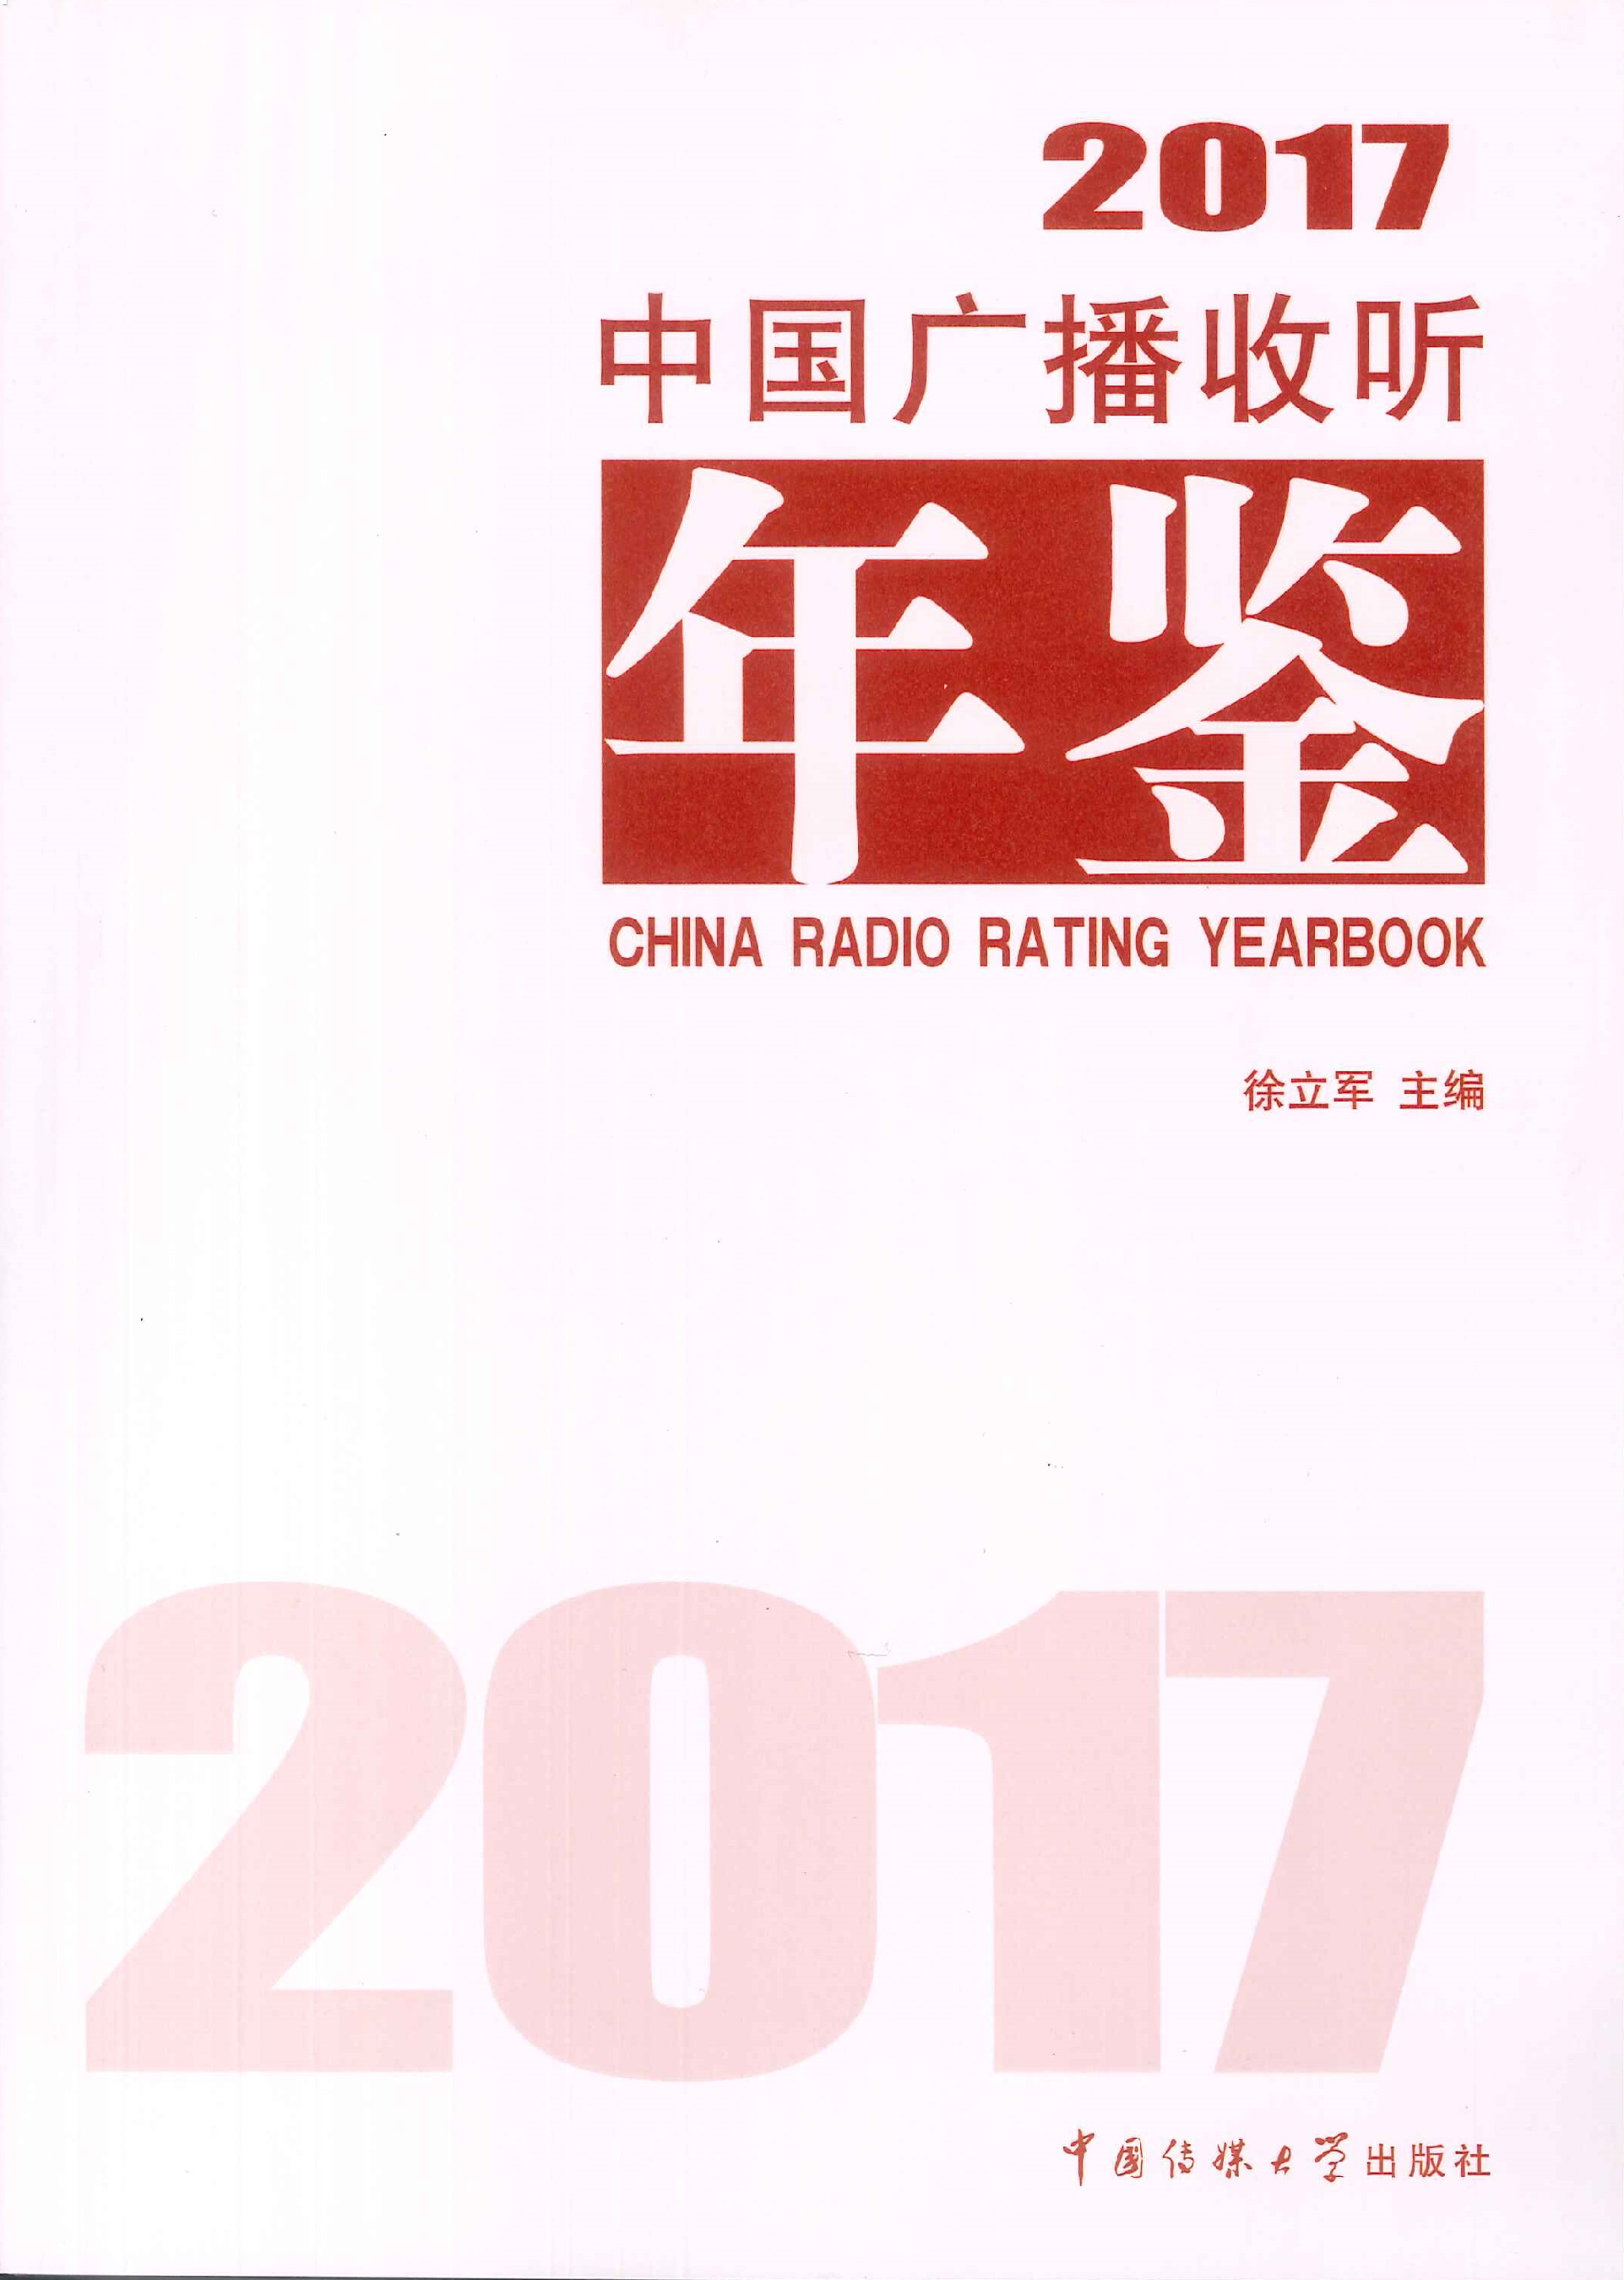 中国广播收听年鉴=China radio rating yearbook